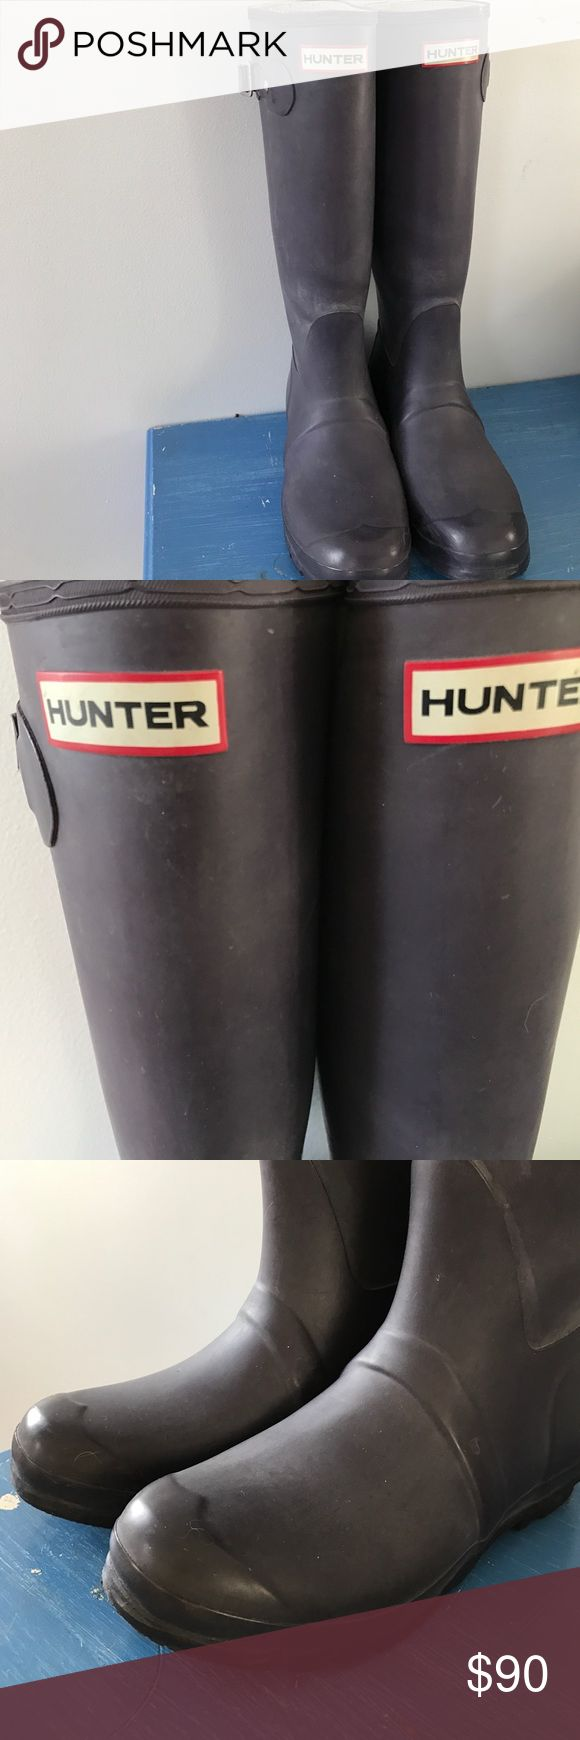 ORIGINAL TALL HUNTER RAIN BOOTS Gently worn tall rain boots, love them but they are a tad too small for me... size 7 Hunter Boots Shoes Winter & Rain Boots